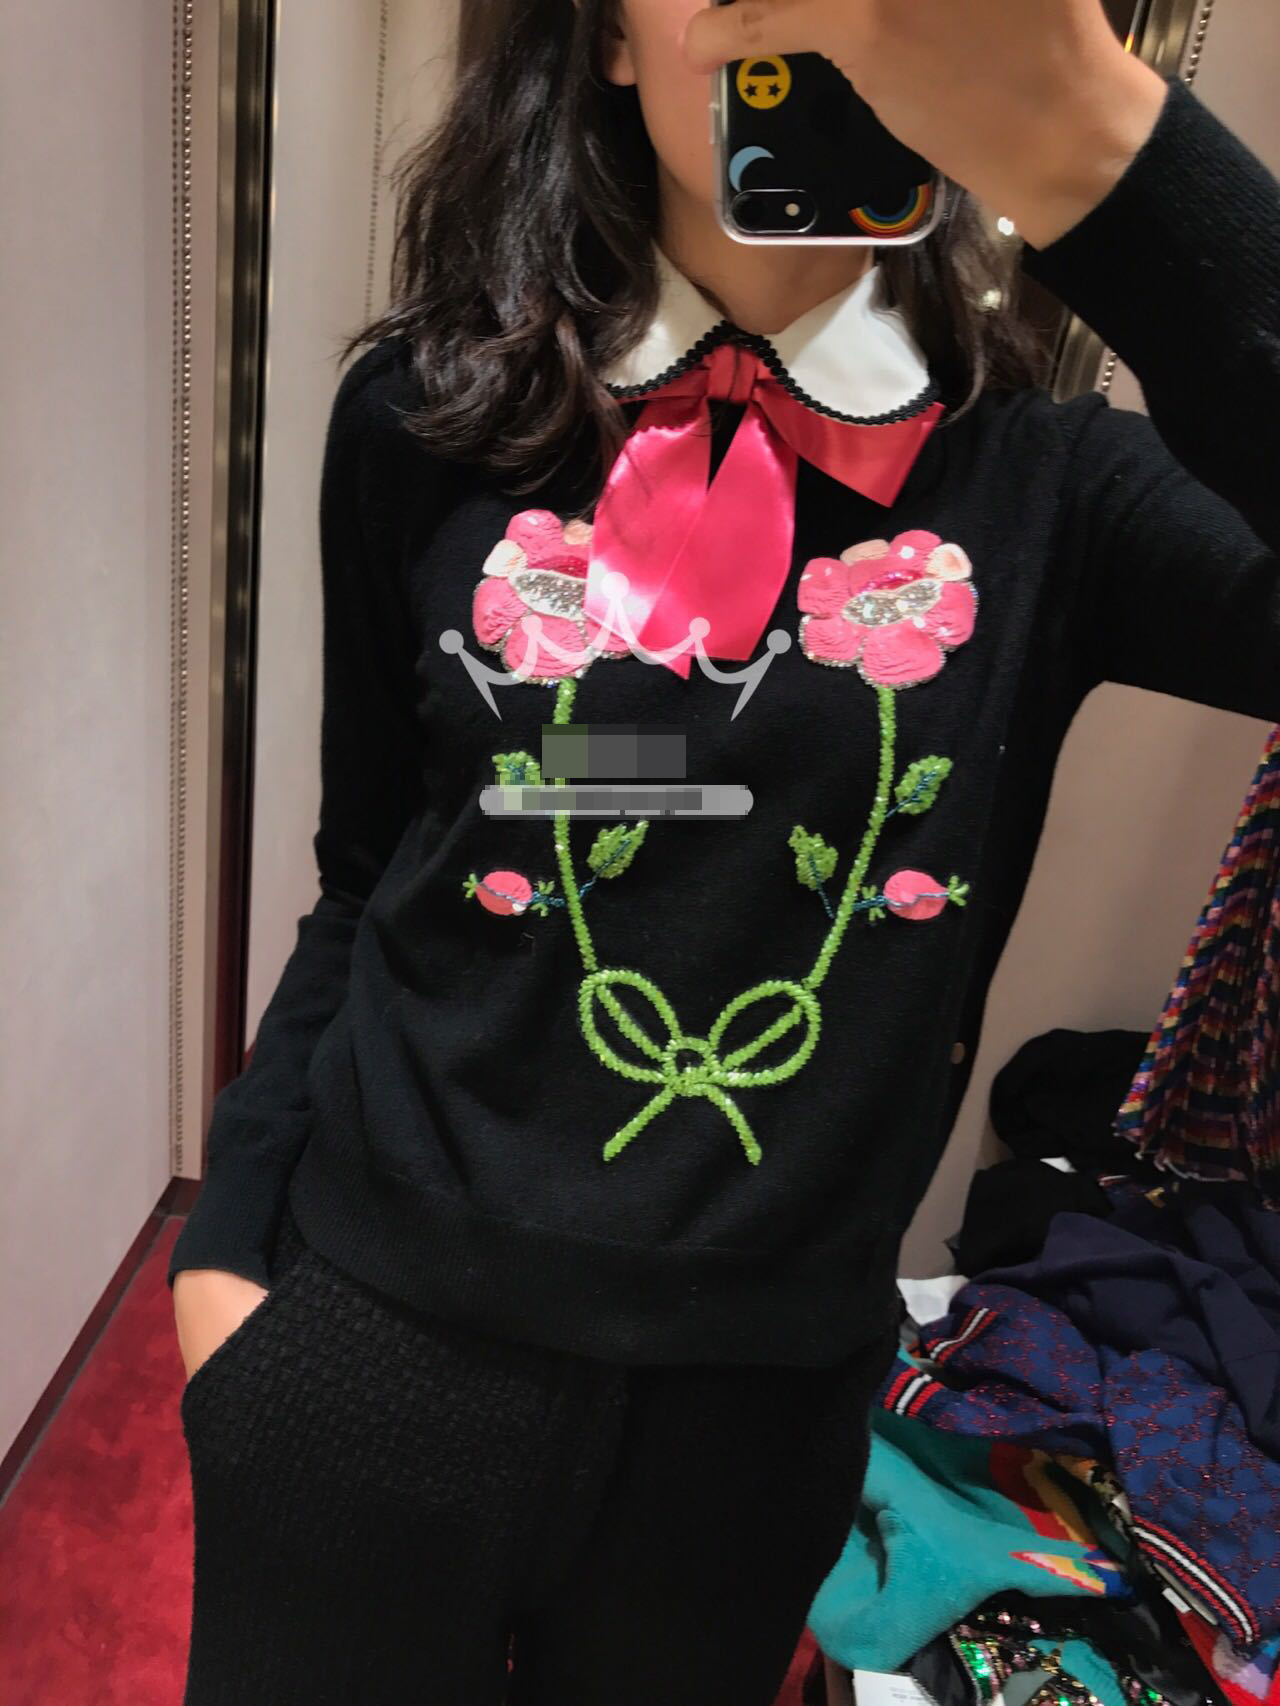 2019 Autumn Winter Christmas Runway Designer Sweater Knitted Women Luxury Floral Embroidery Sequins Pullovers Jumper Clothes